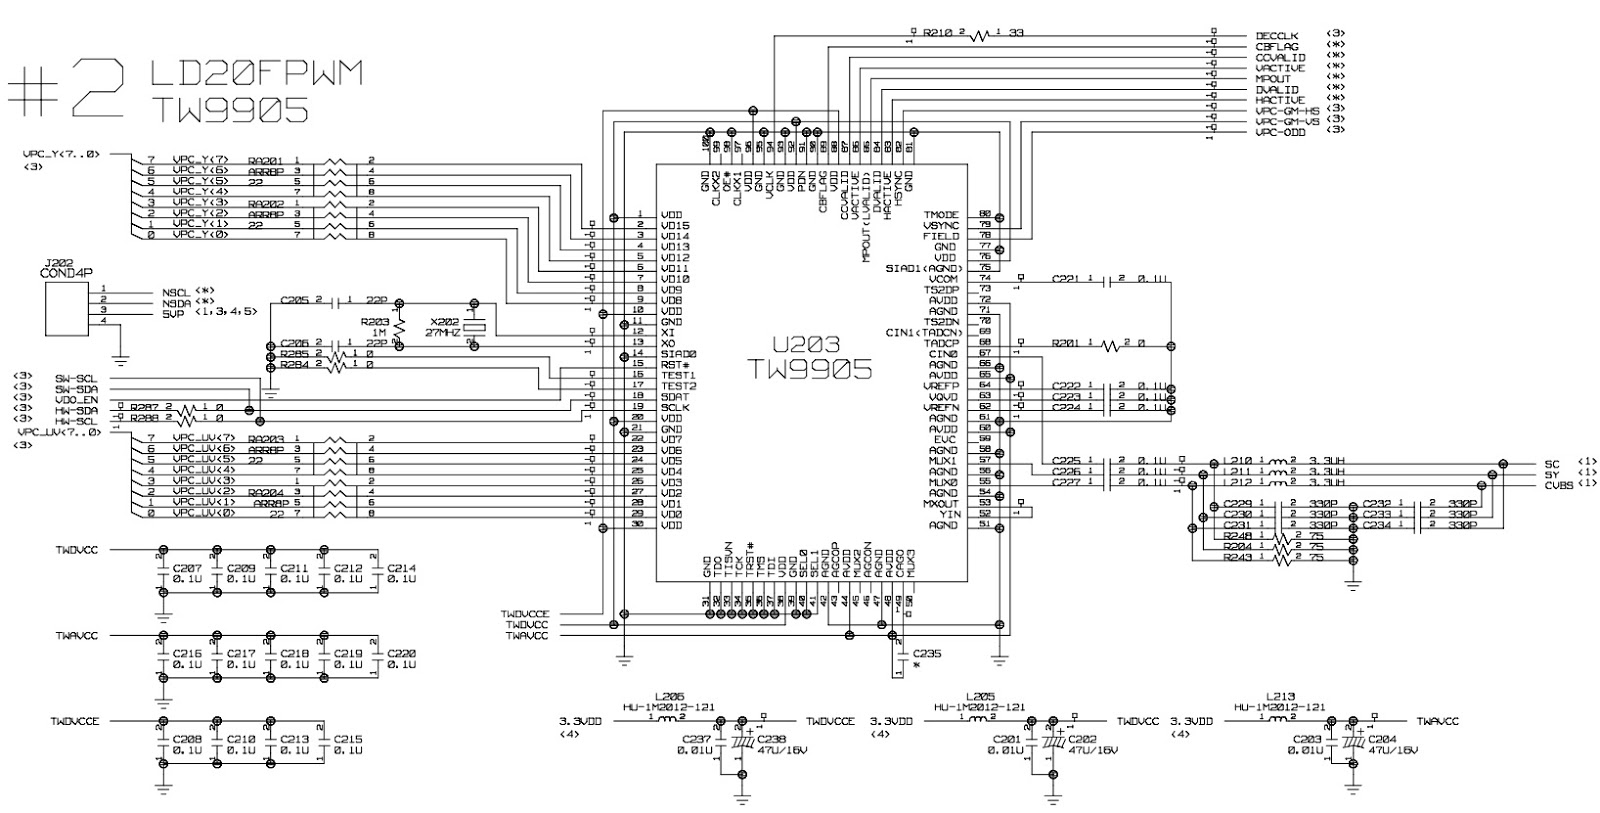 Pleasant Chopperforictester Basiccircuit Circuit Diagram Seekiccom Basic Wiring 101 Mecadwellnesstrialsorg